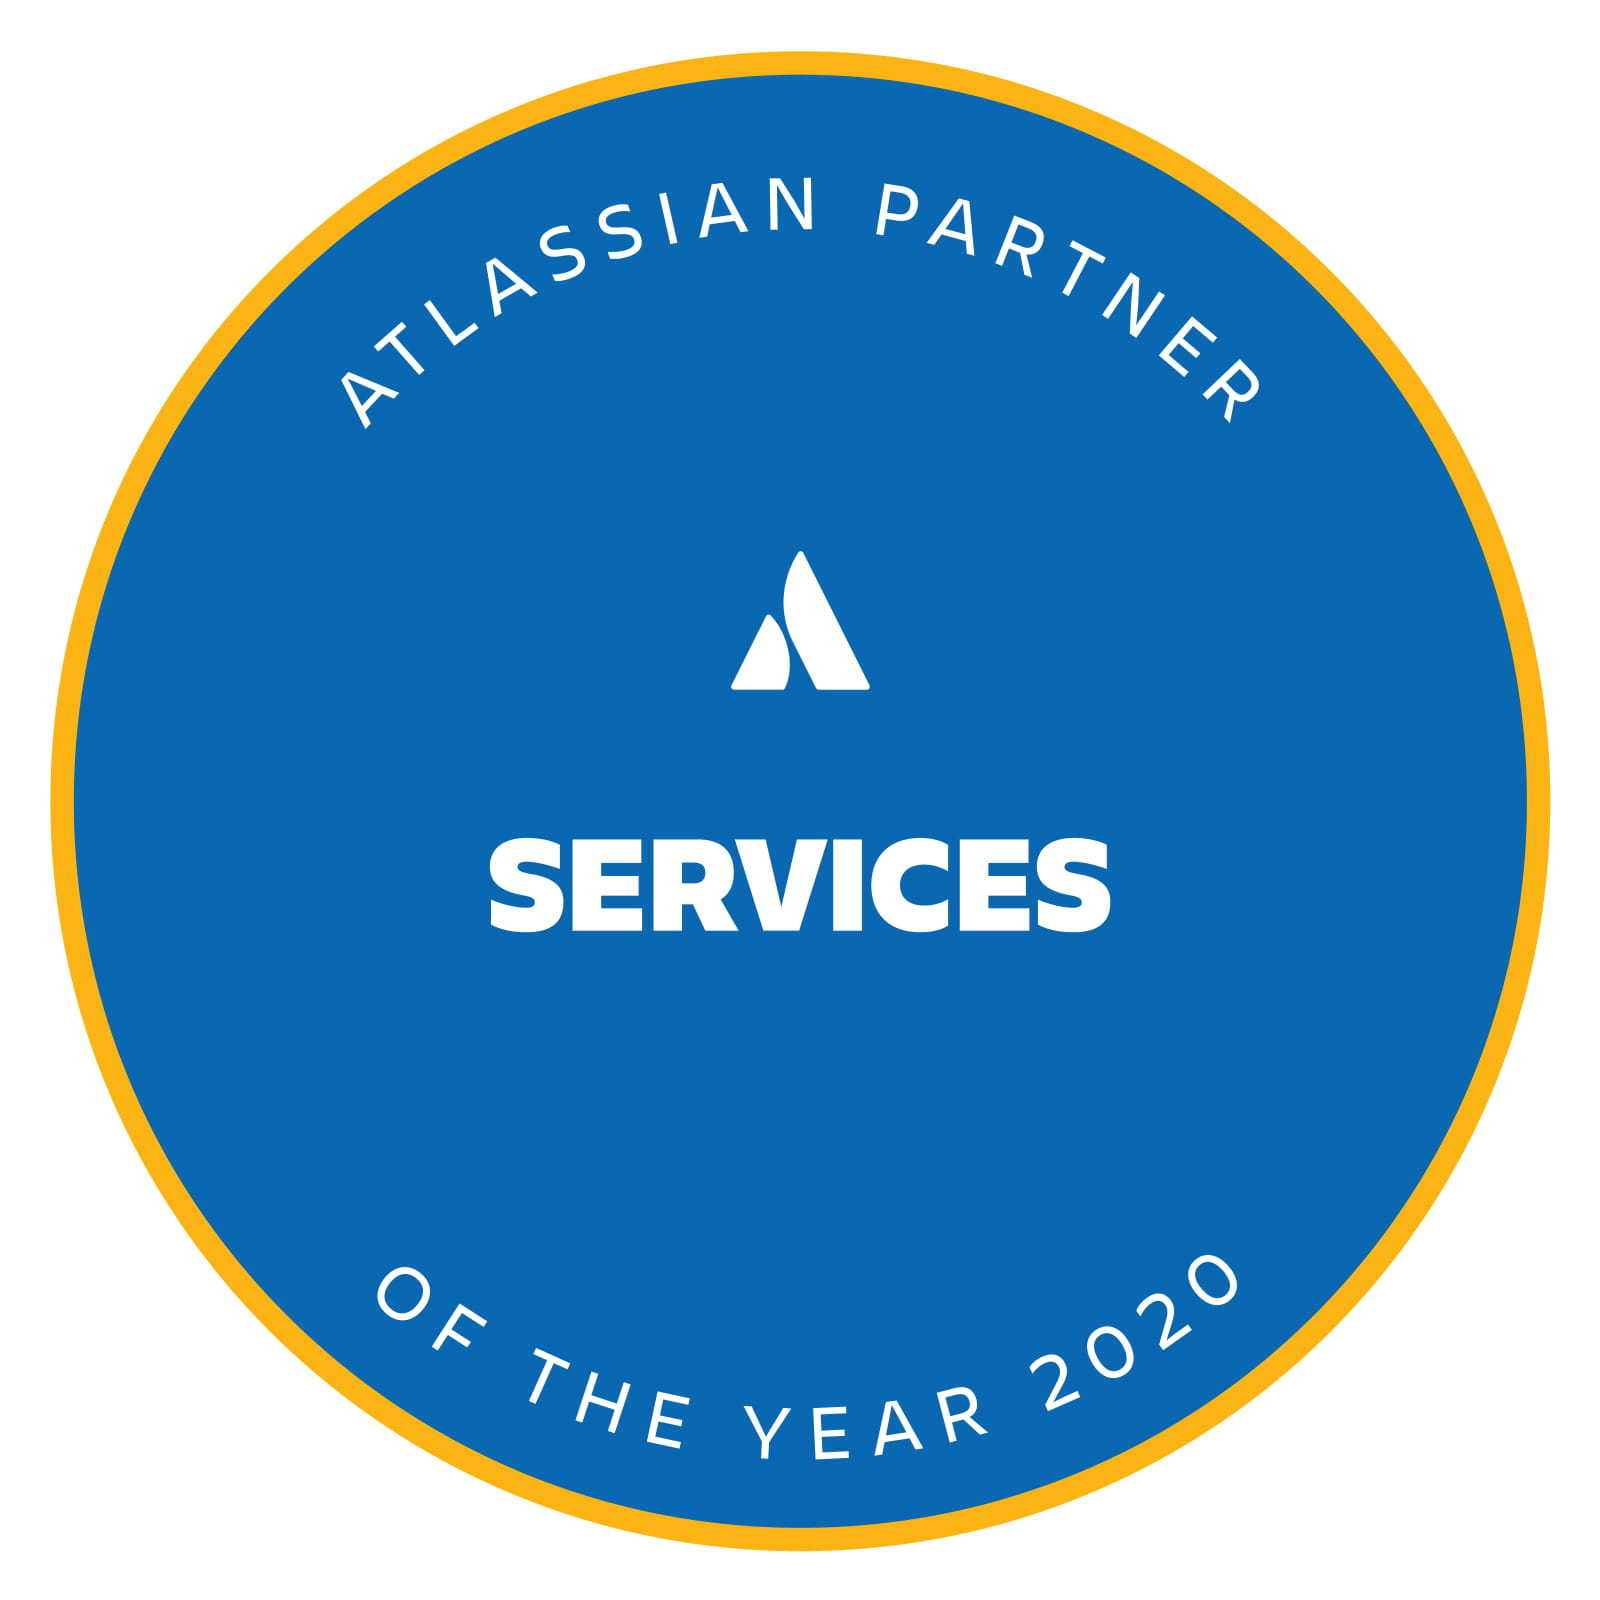 Atlassian Partner of the Year 2020: APAC Services